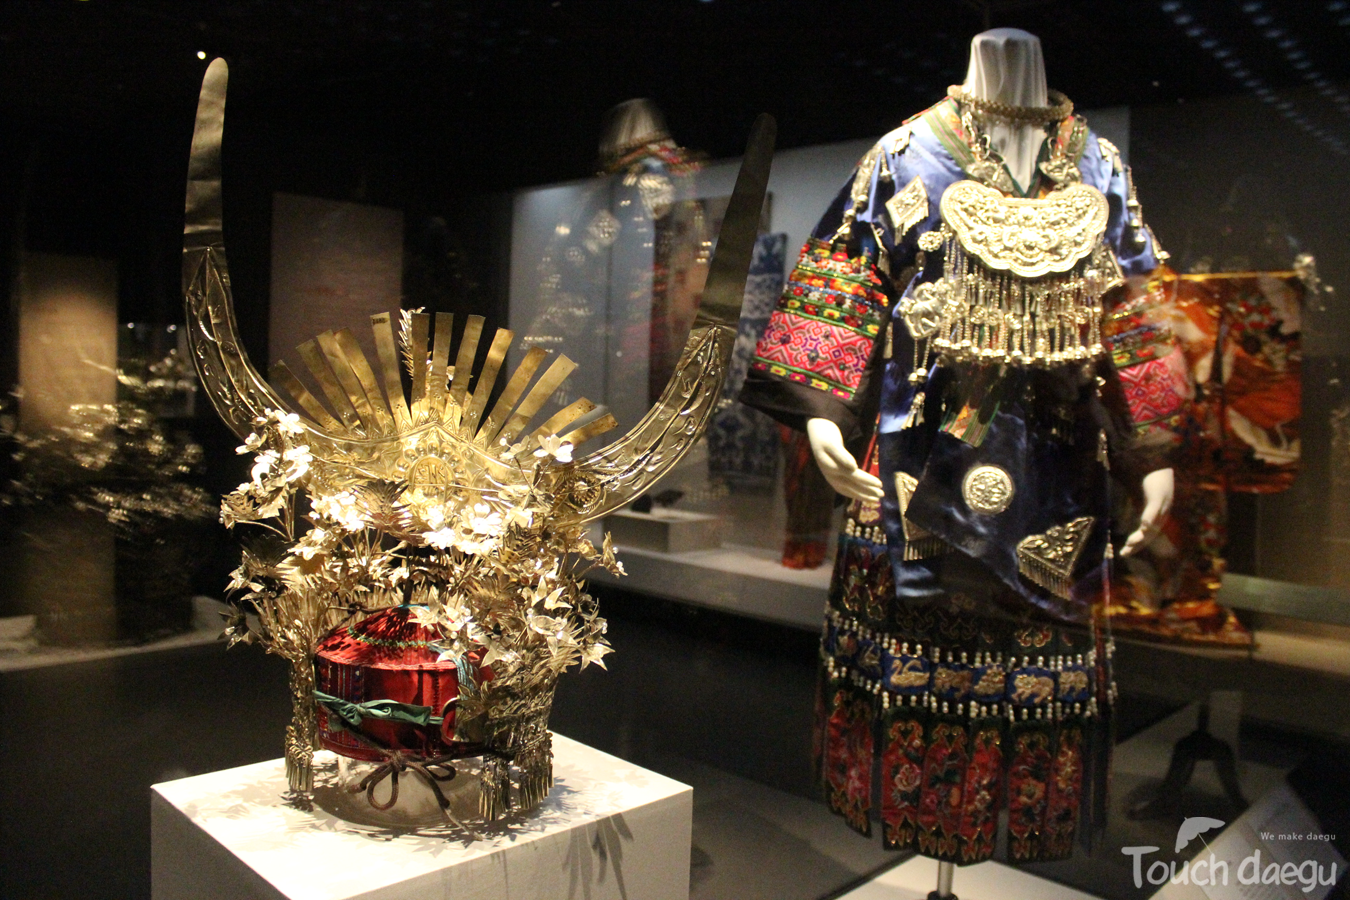 The historical artifacts in Daegu national museum